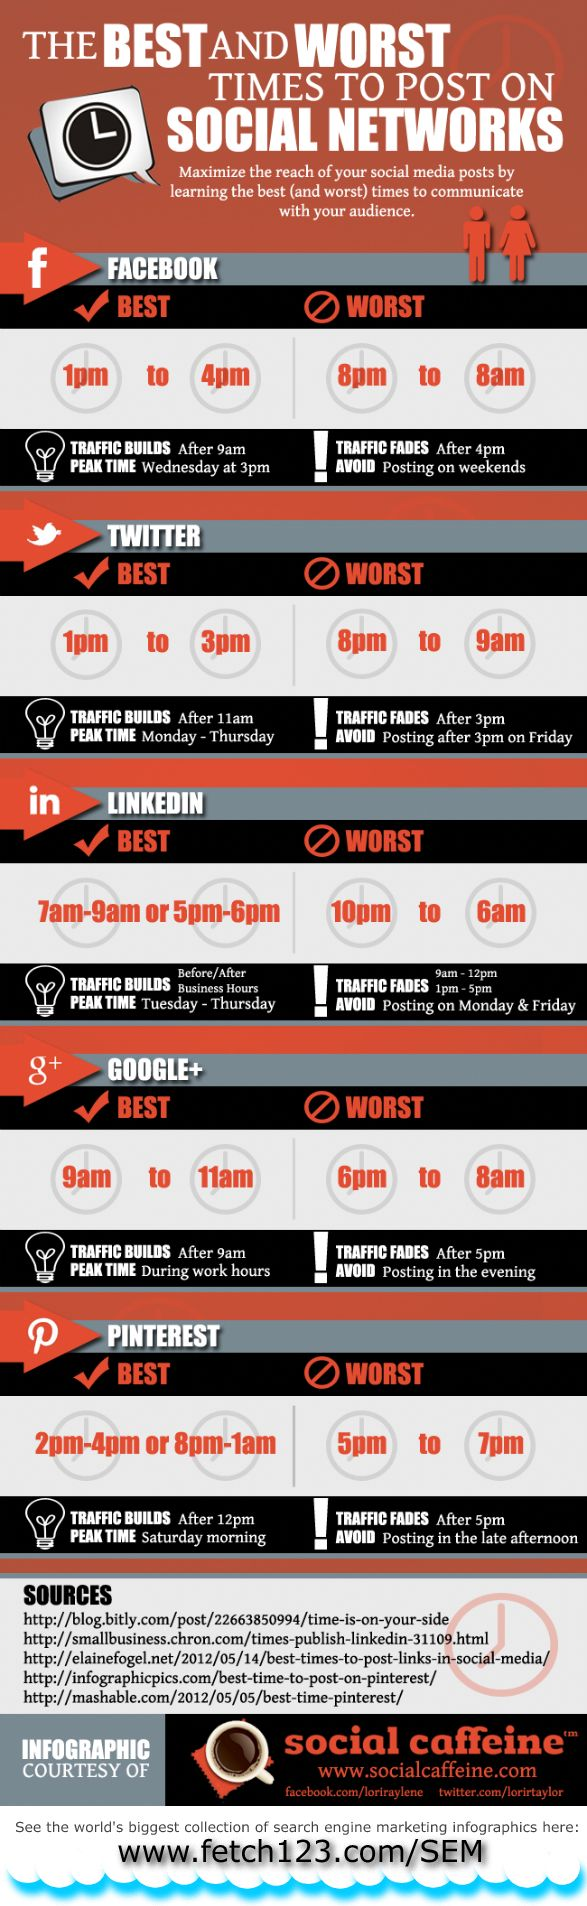 The Best (And Worst) Times To Post To Twitter, Facebook, Pinterest, And Google+ [INFOGRAPHIC]: Social Network, Social Media Marketing, Socialnetwork, Small Business, Social Media Infographic, Posts, Socialmedia, Worst Time, Medium